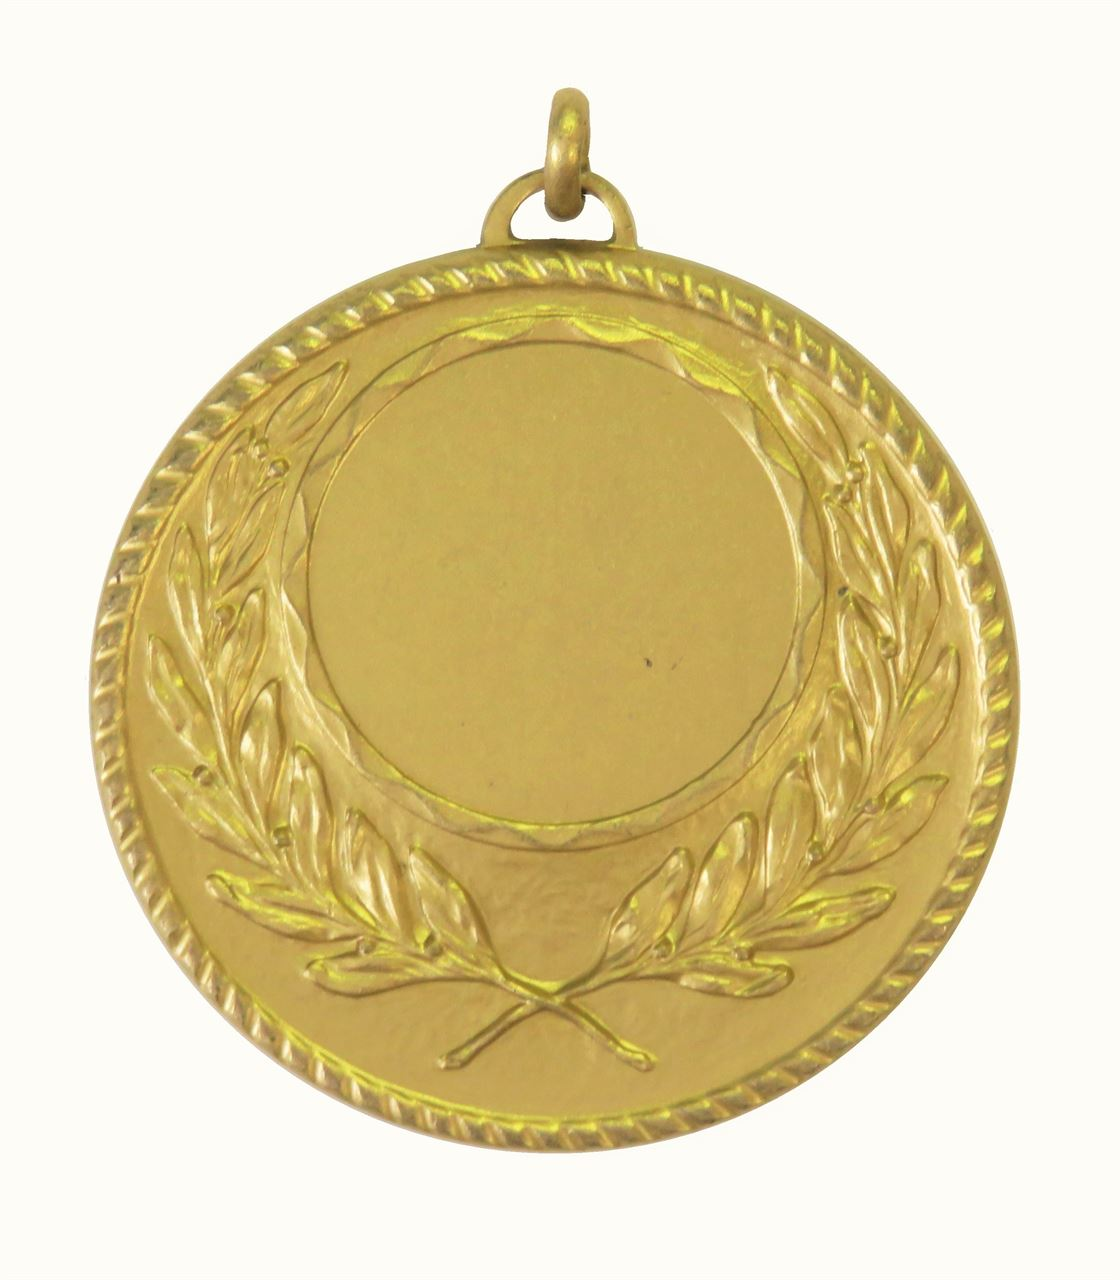 Gold Quality Wreath Medal (size: 50mm) - 5605E